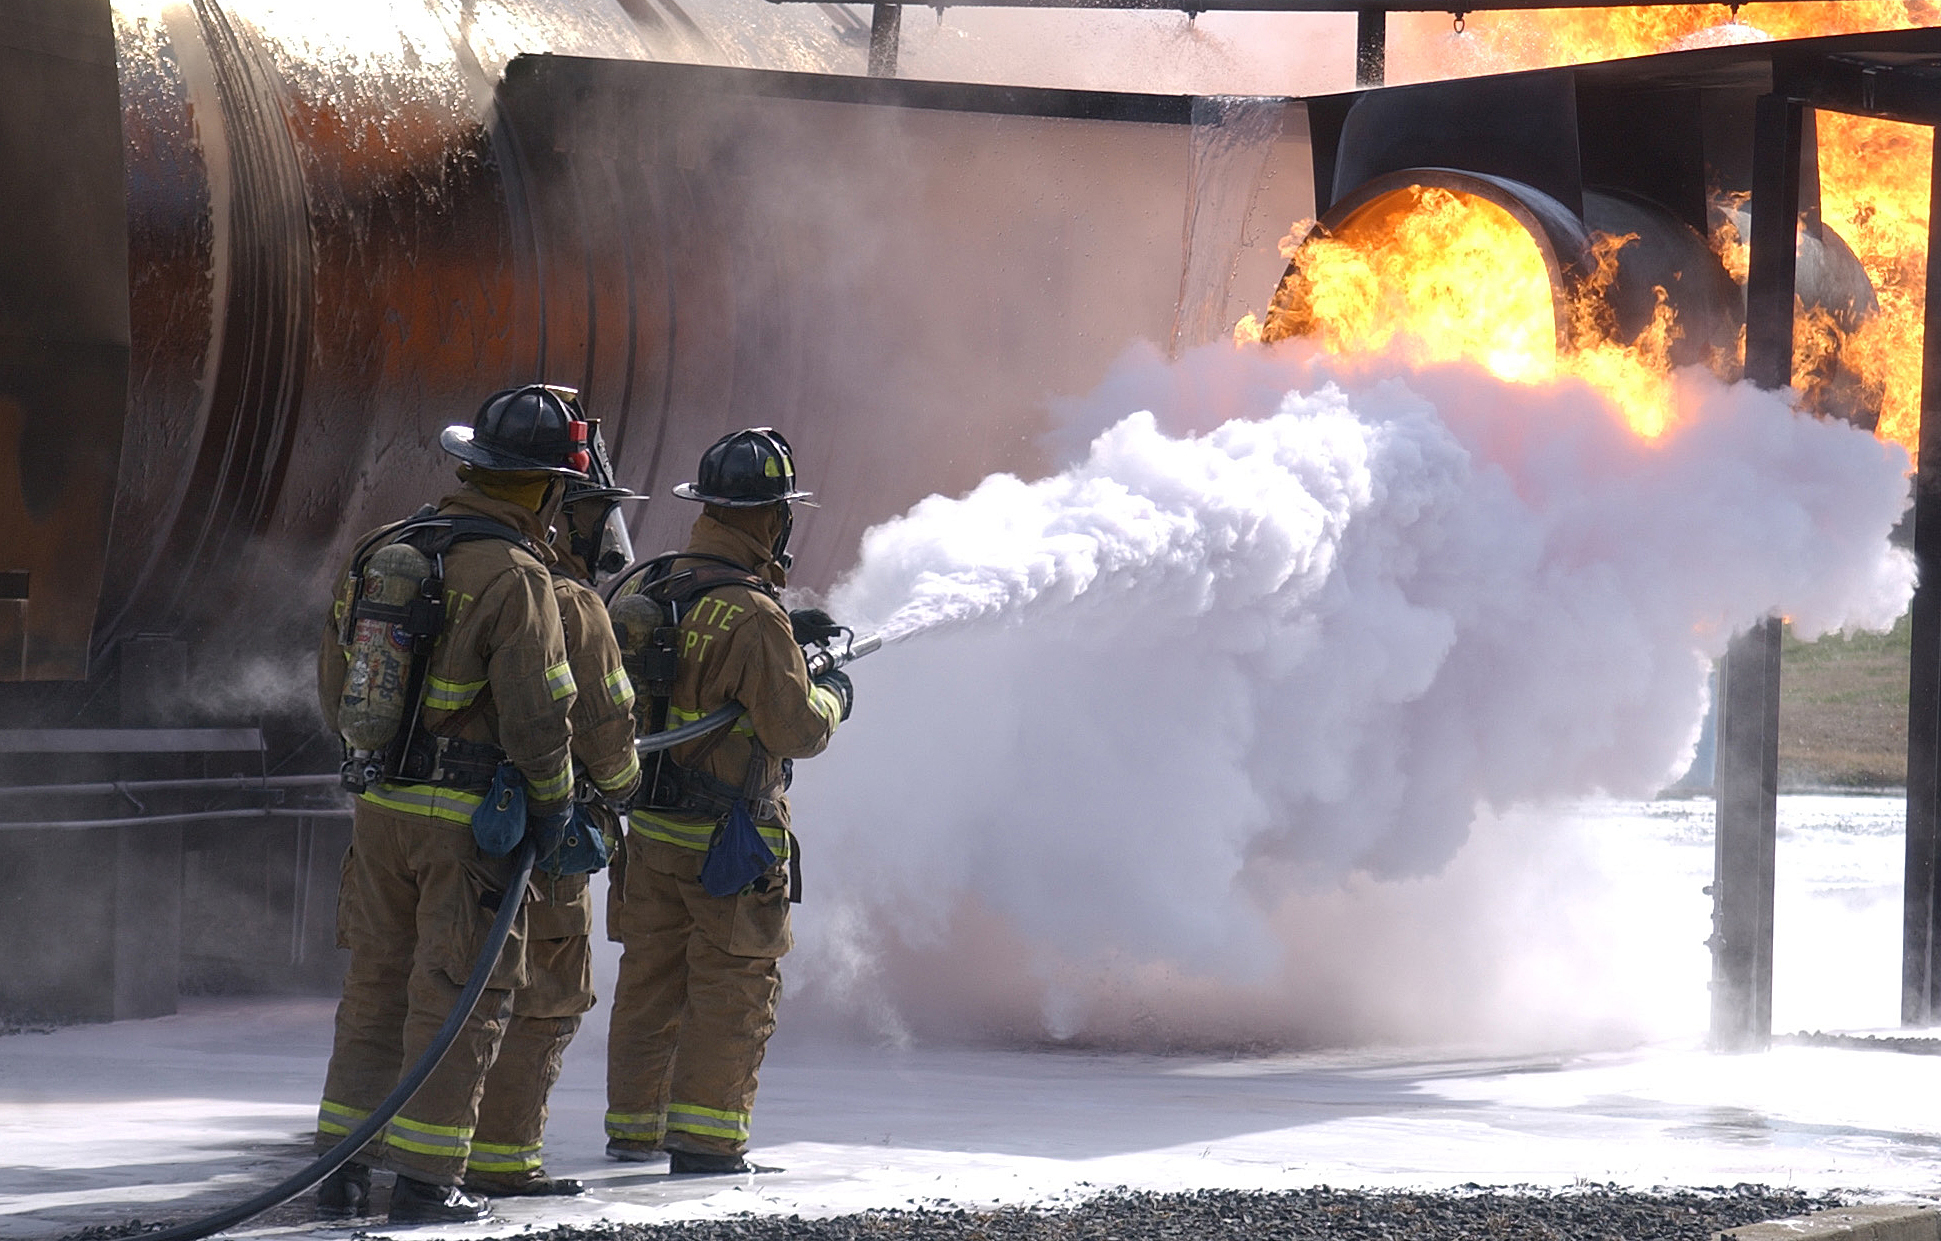 Certain firefighting foams used to put out oil fires have been linked to PFAS contamination of groundwater near fire stations and military bases. Photo by Tech Sgt Brian E. Christiansen, North Carolina Air National Guard Public Affairs